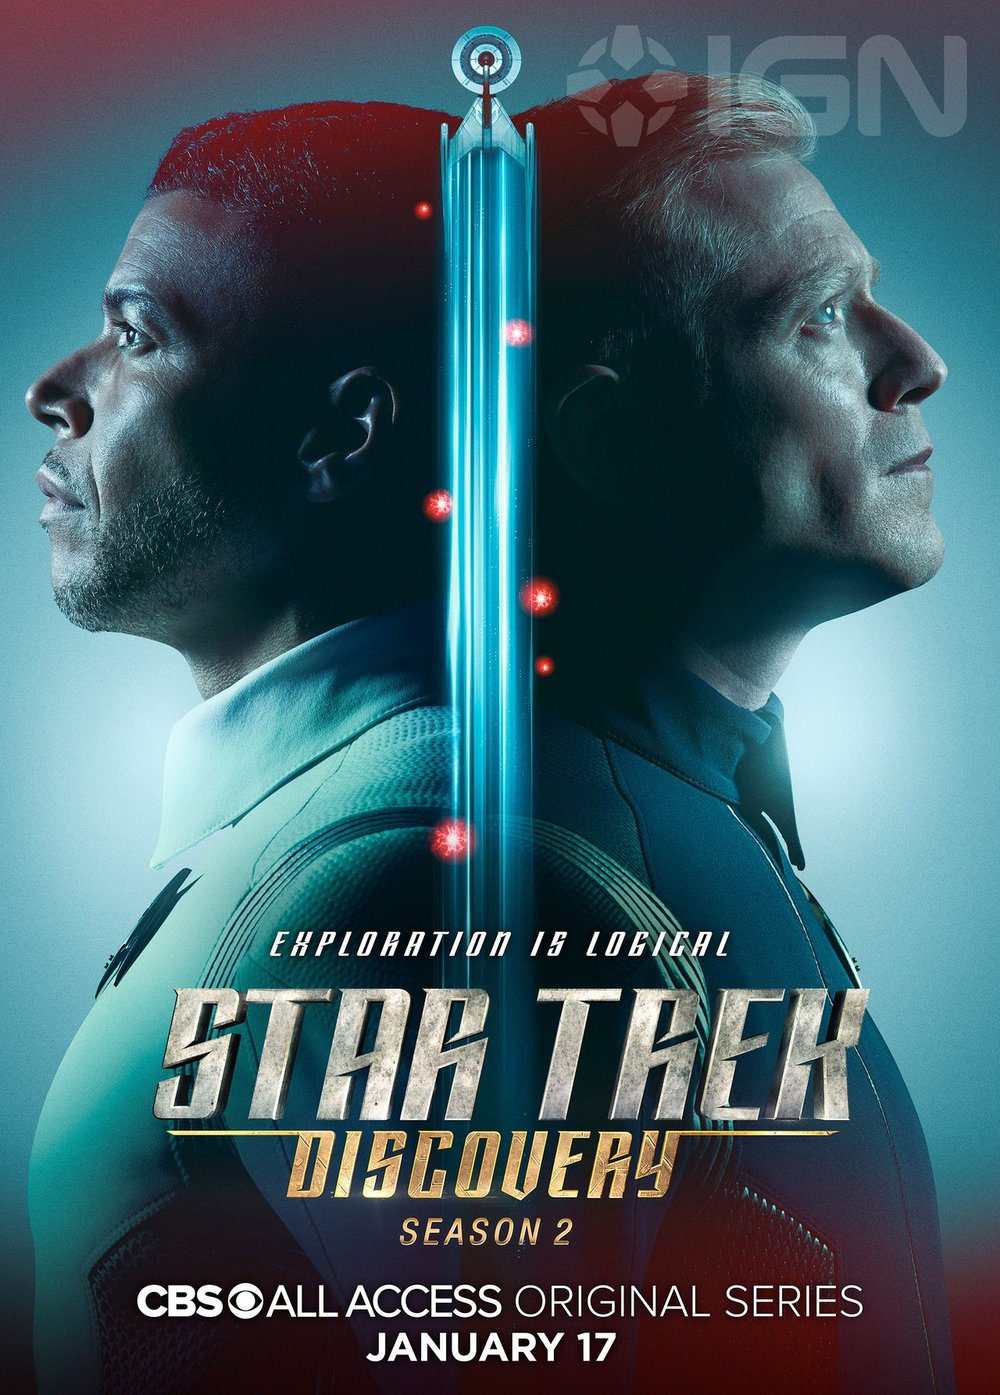 star-trek-discovery-featurette-focuses-on-captain-pike-and-new-character-posters4